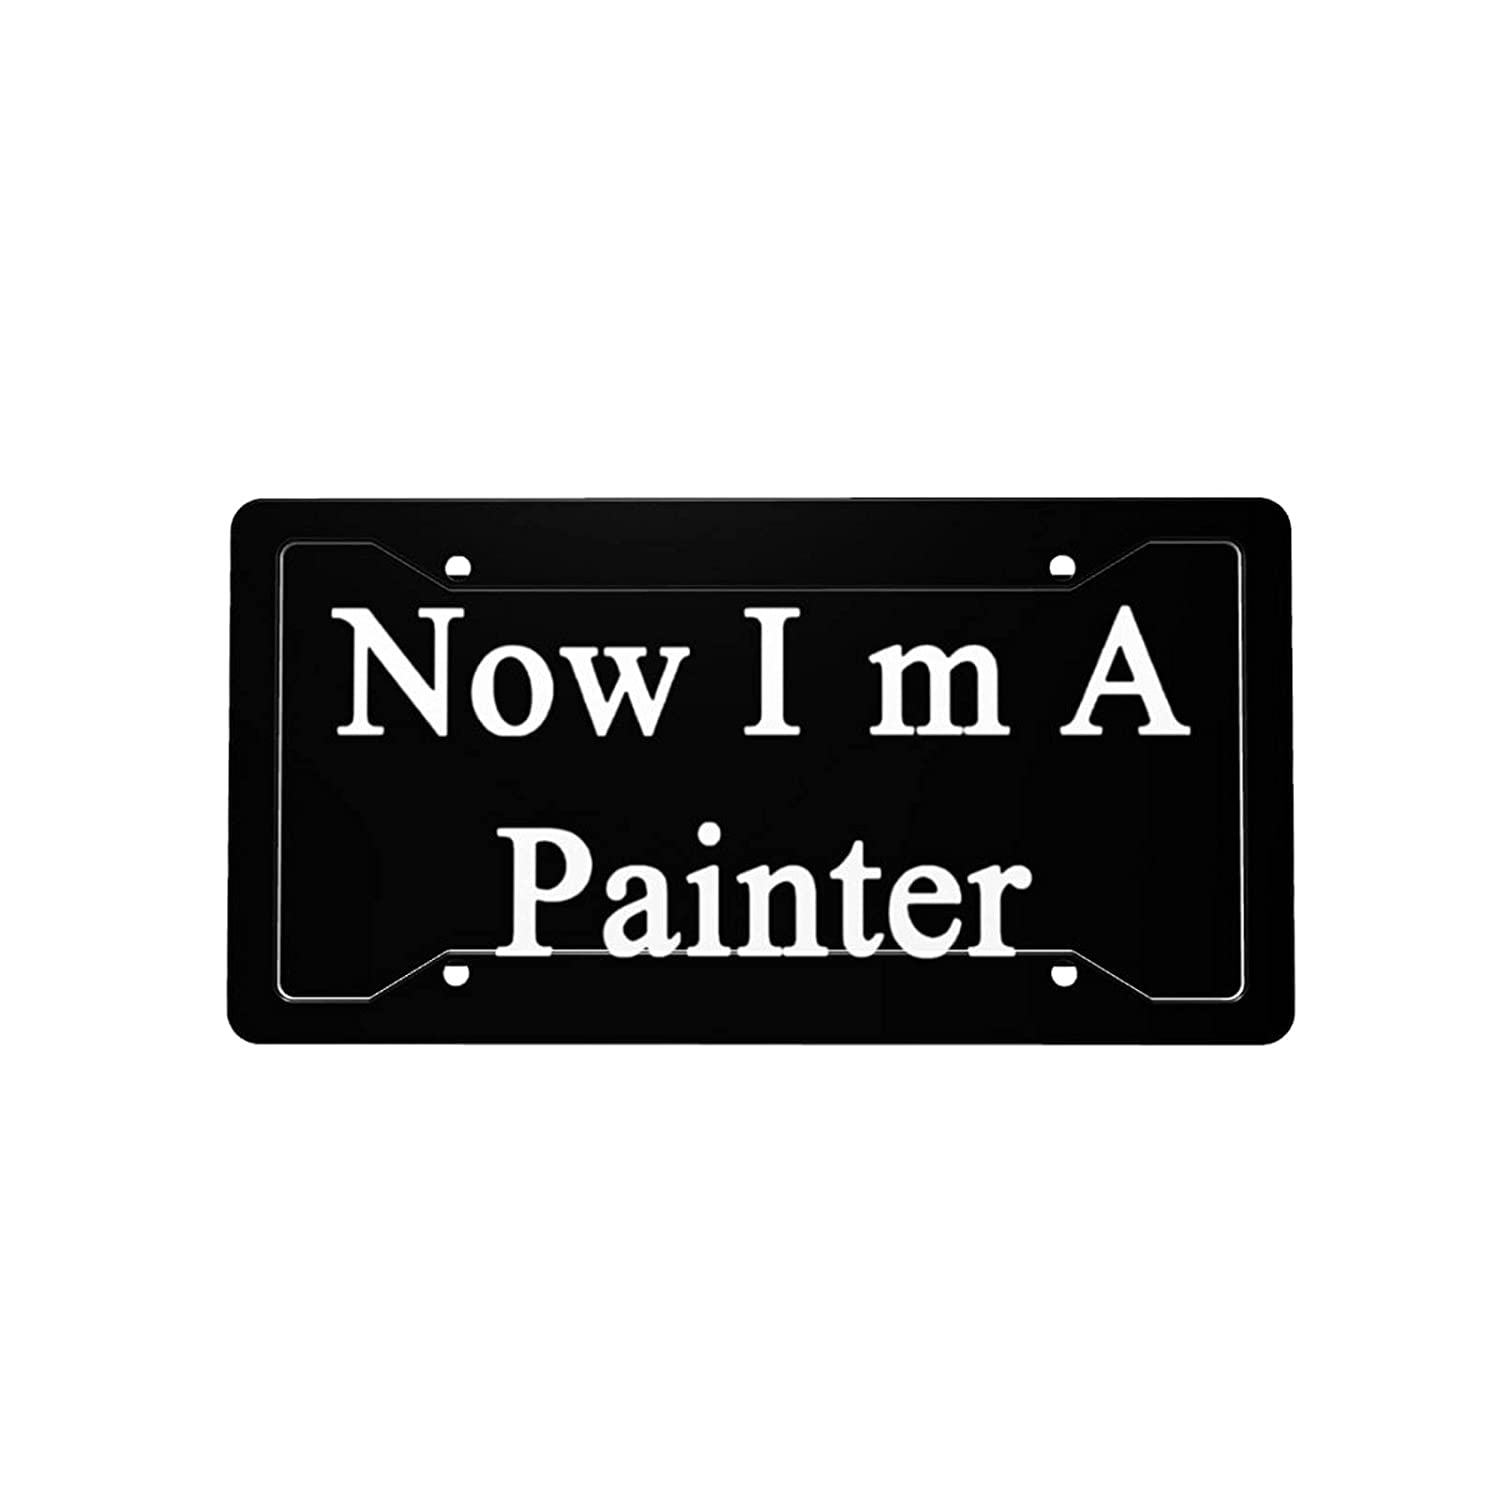 Now I'm A Painter License Plate Lic Vanity Max Ranking TOP12 85% OFF Car Front Decorative